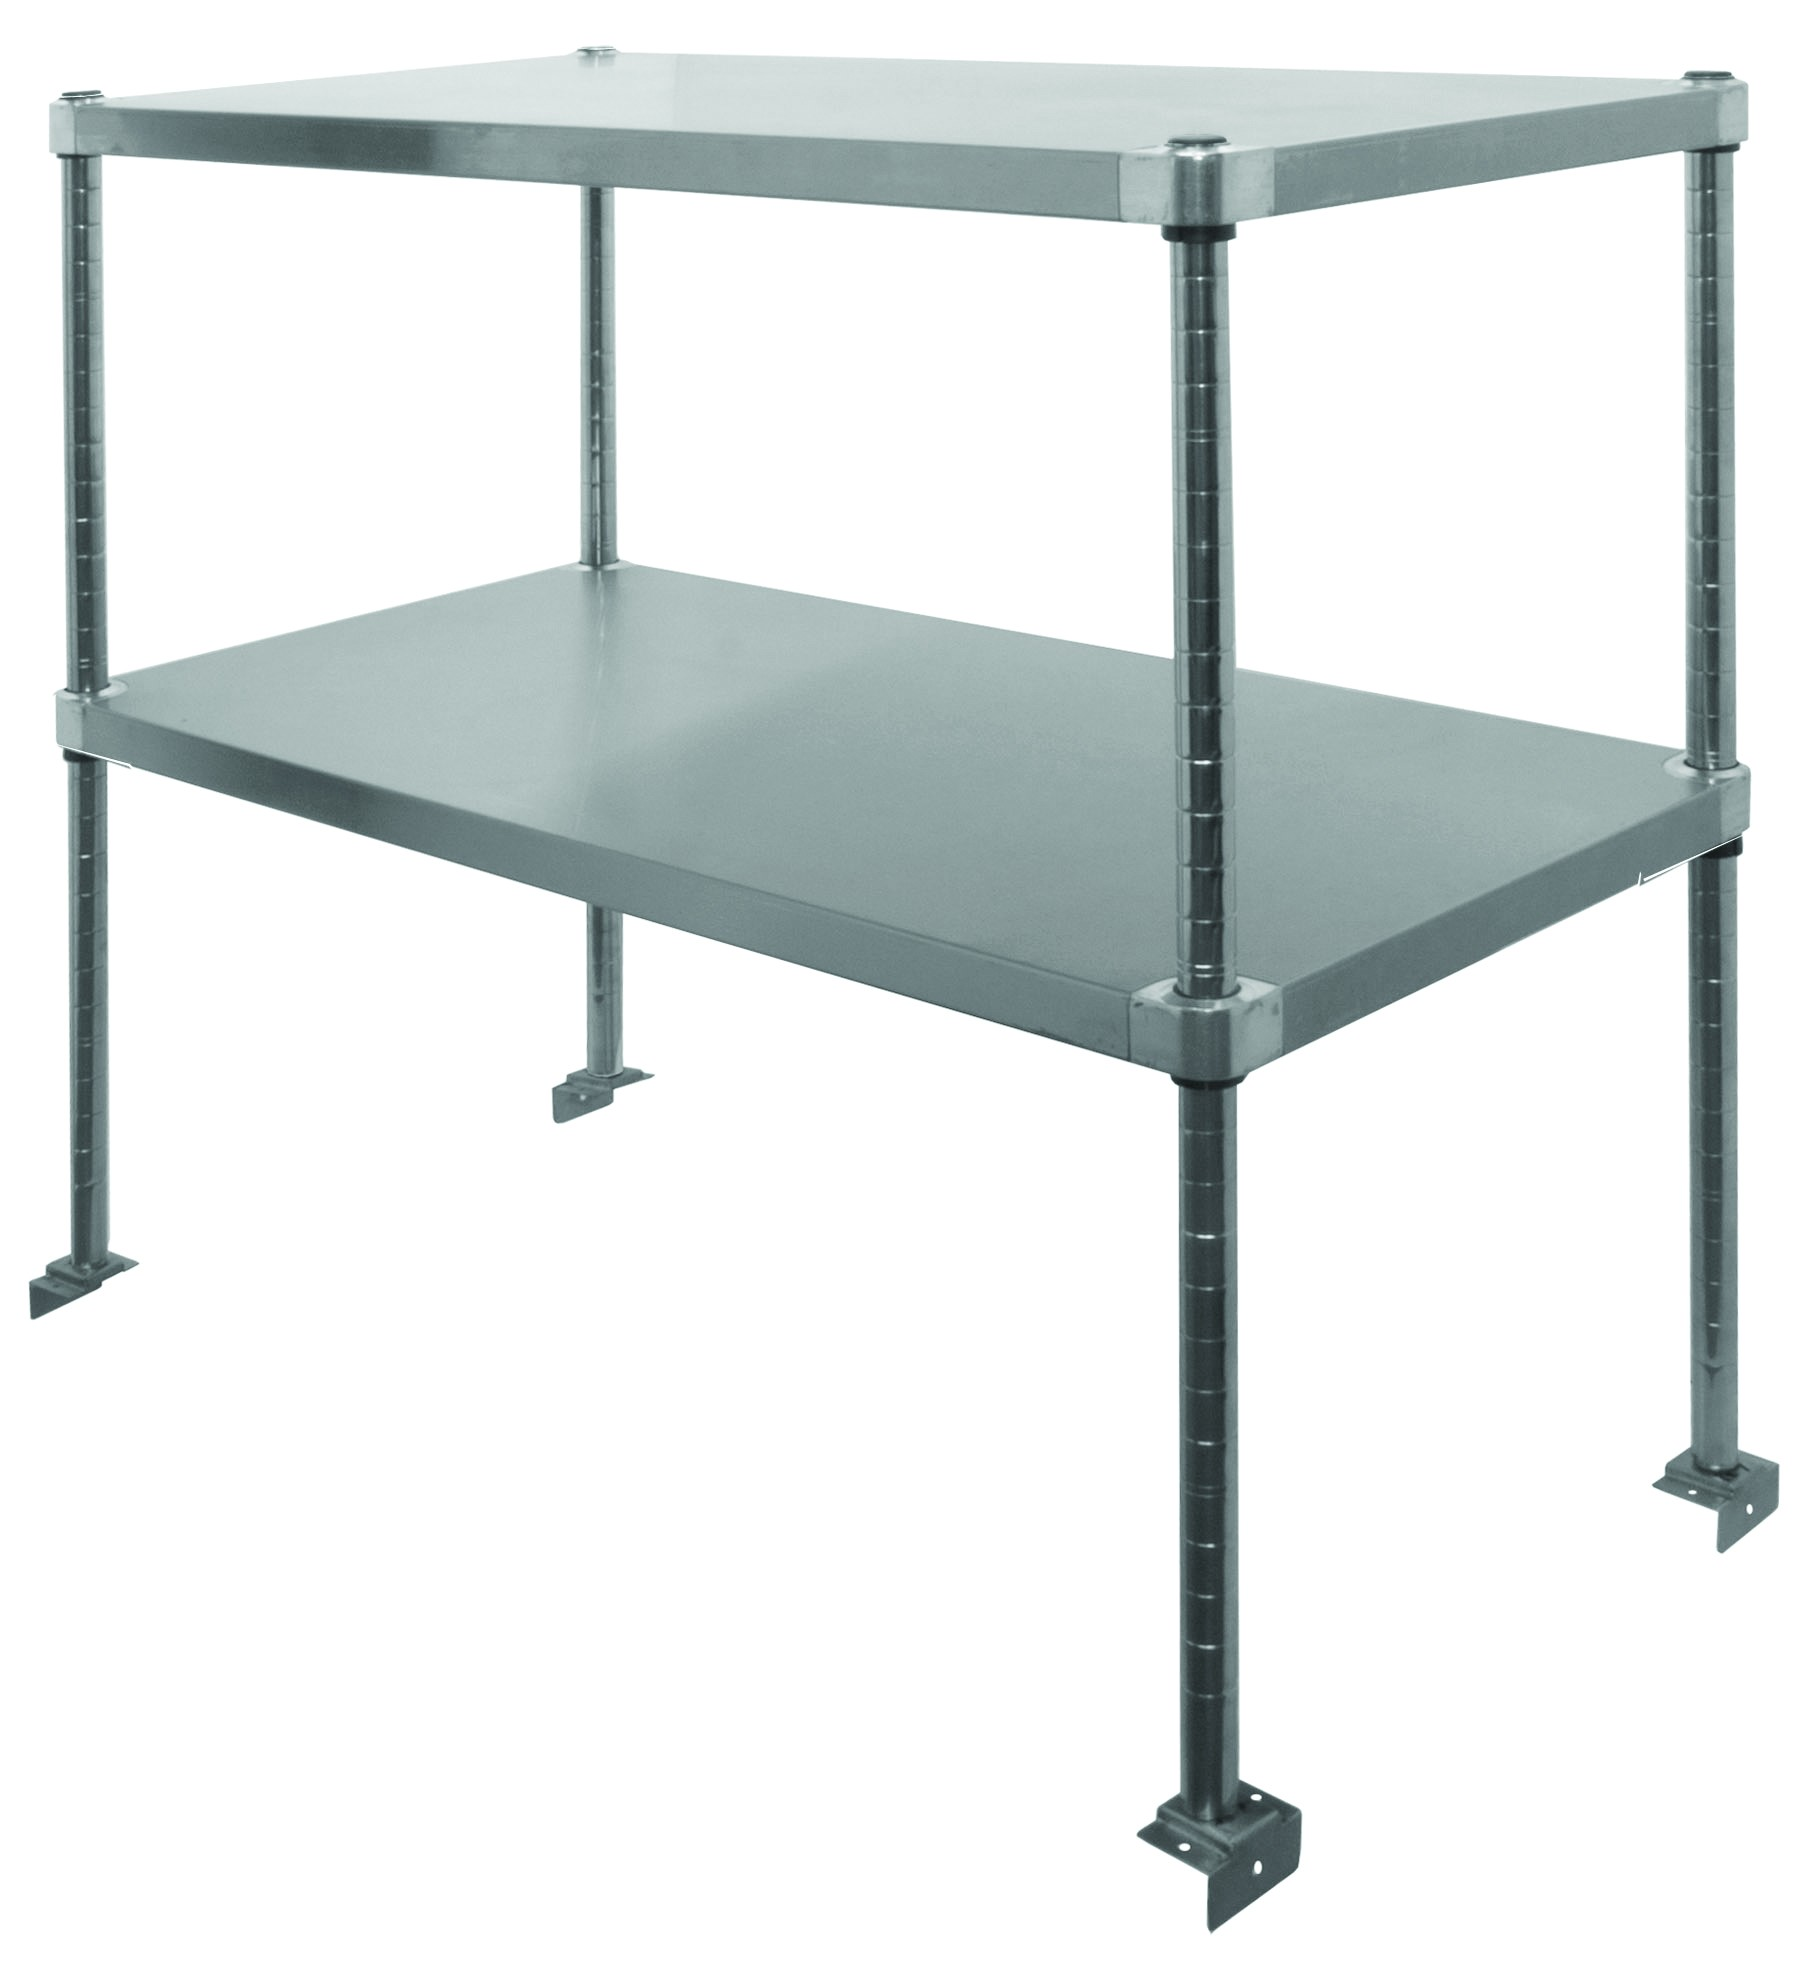 Stainless Steel Adjustable Double Over Shelf - GSW